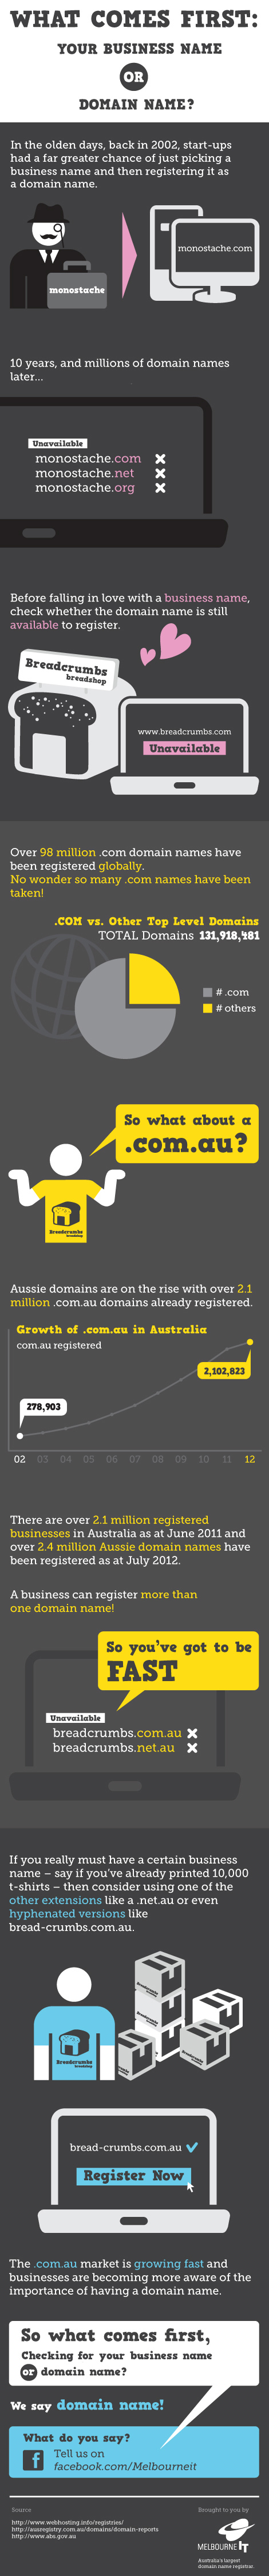 Australian Domain Registry-Infographic